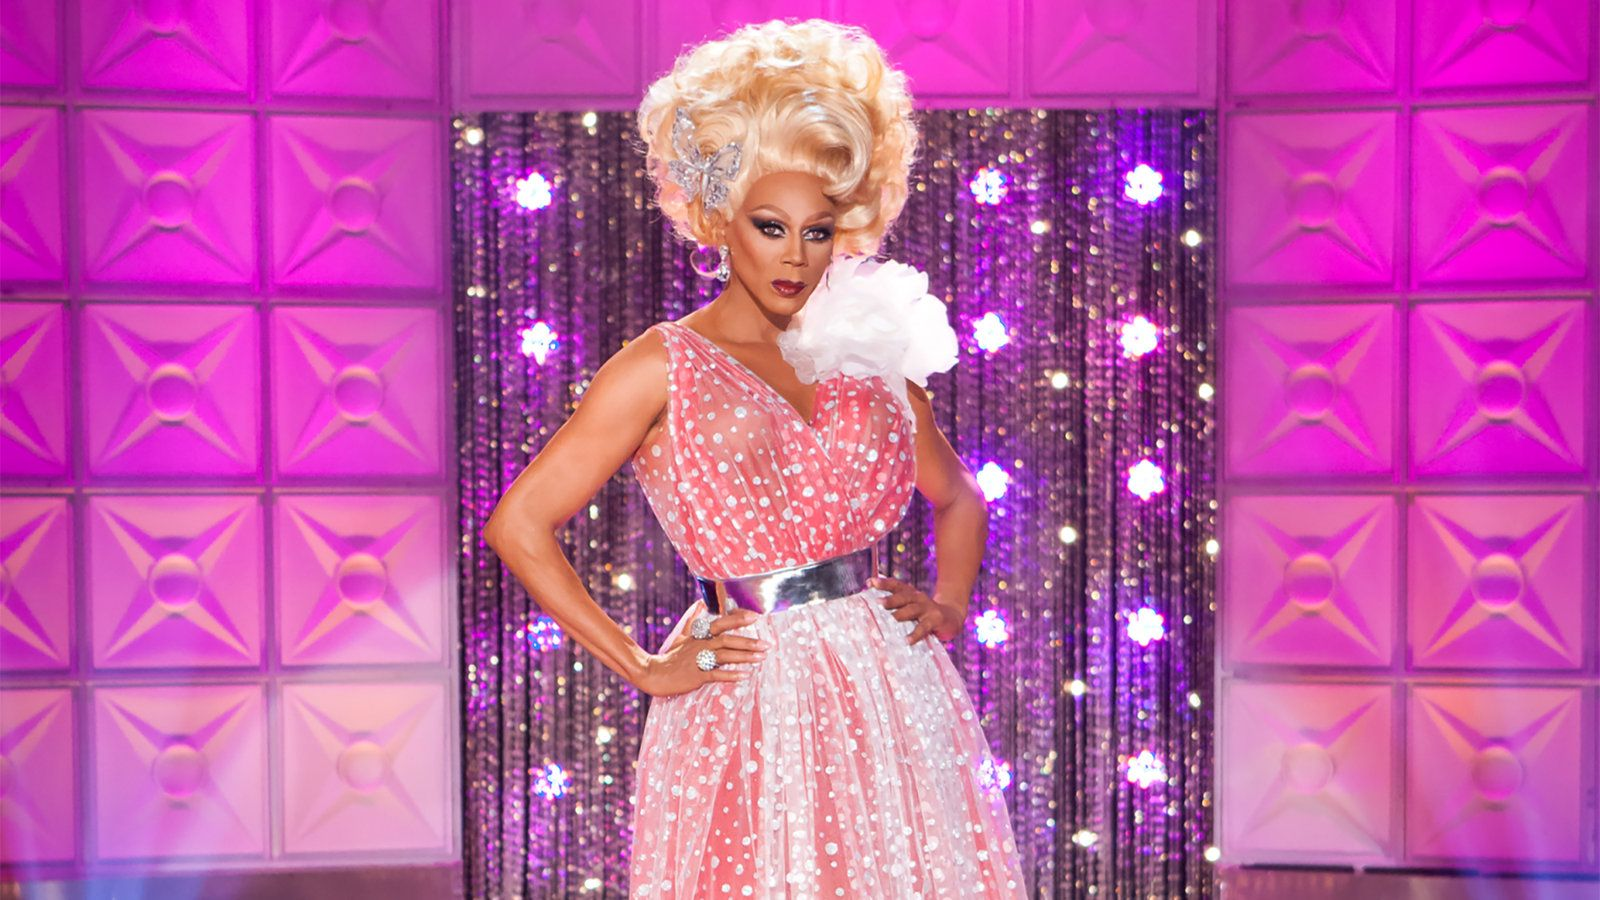 RuPaul's Drag Race UK is happening, so here's everything you need to know